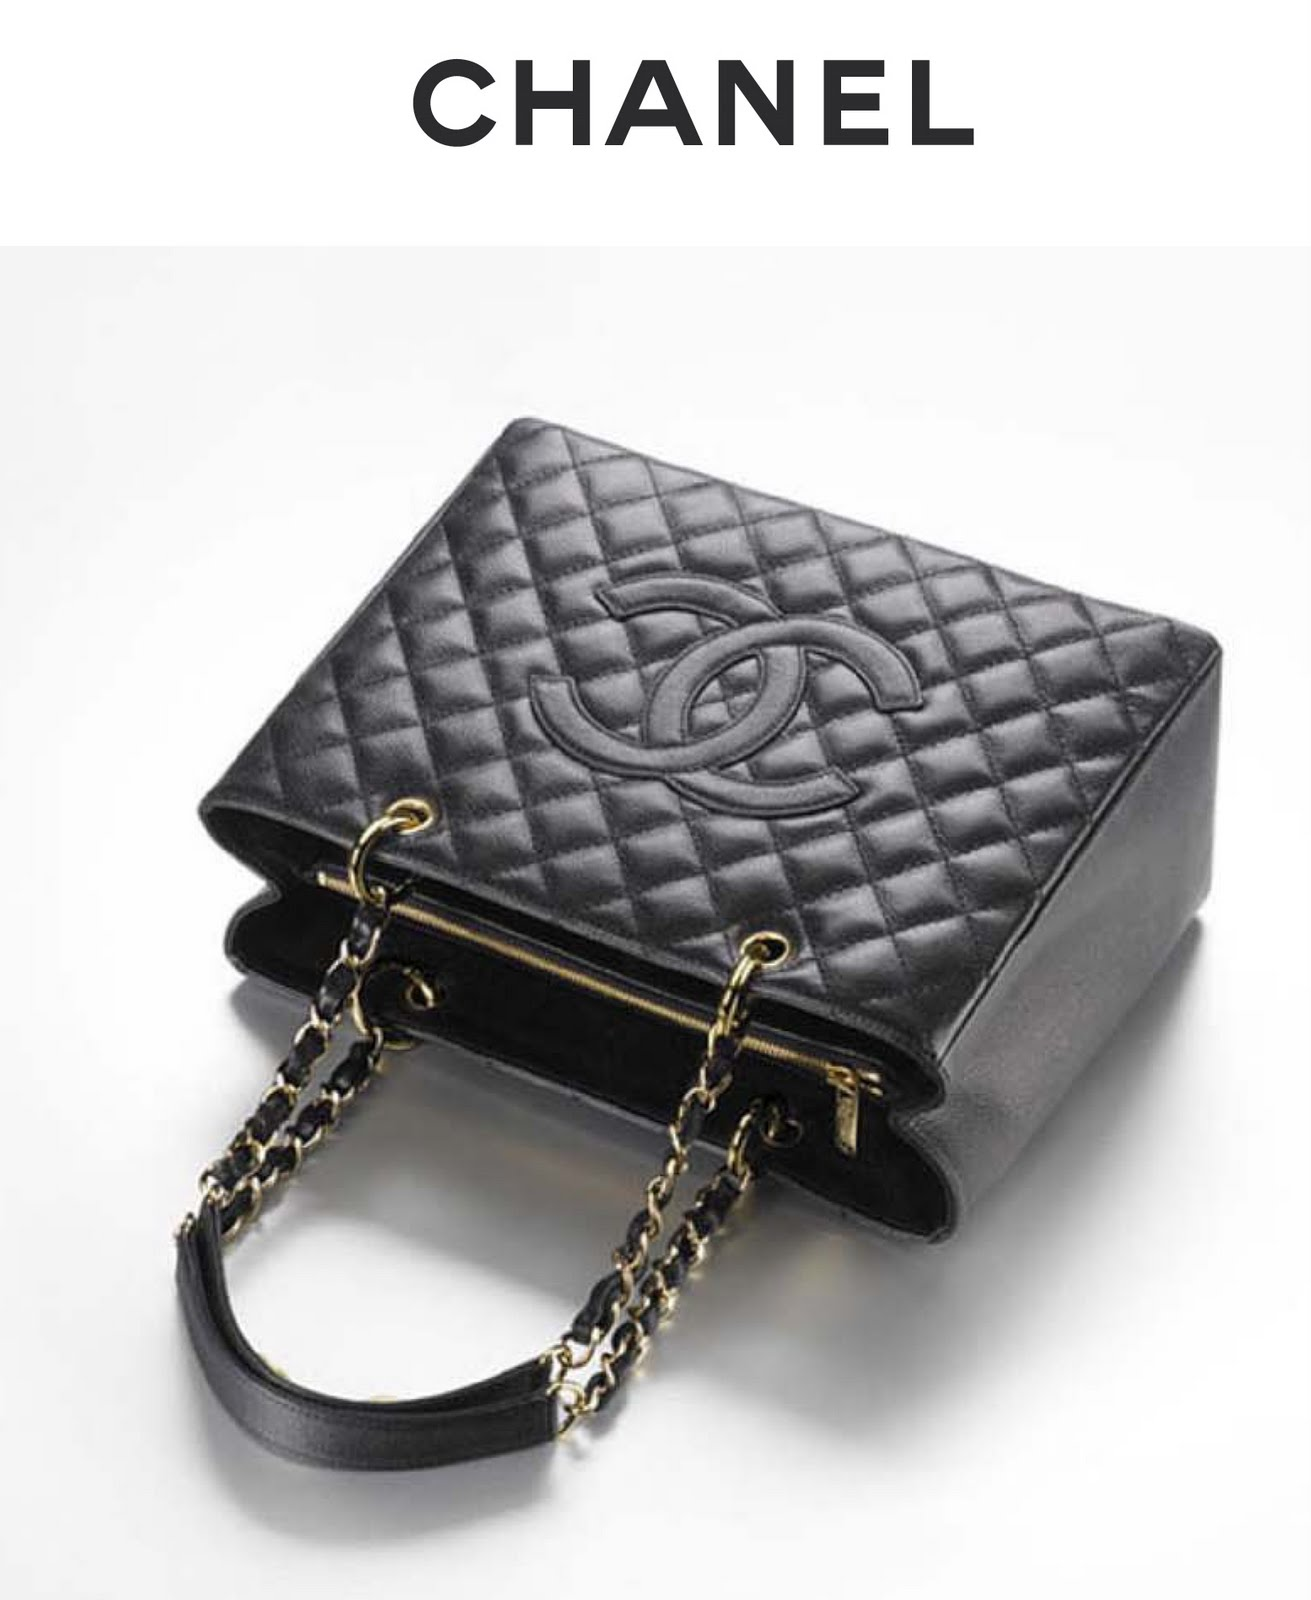 classic chanel bag price-#2